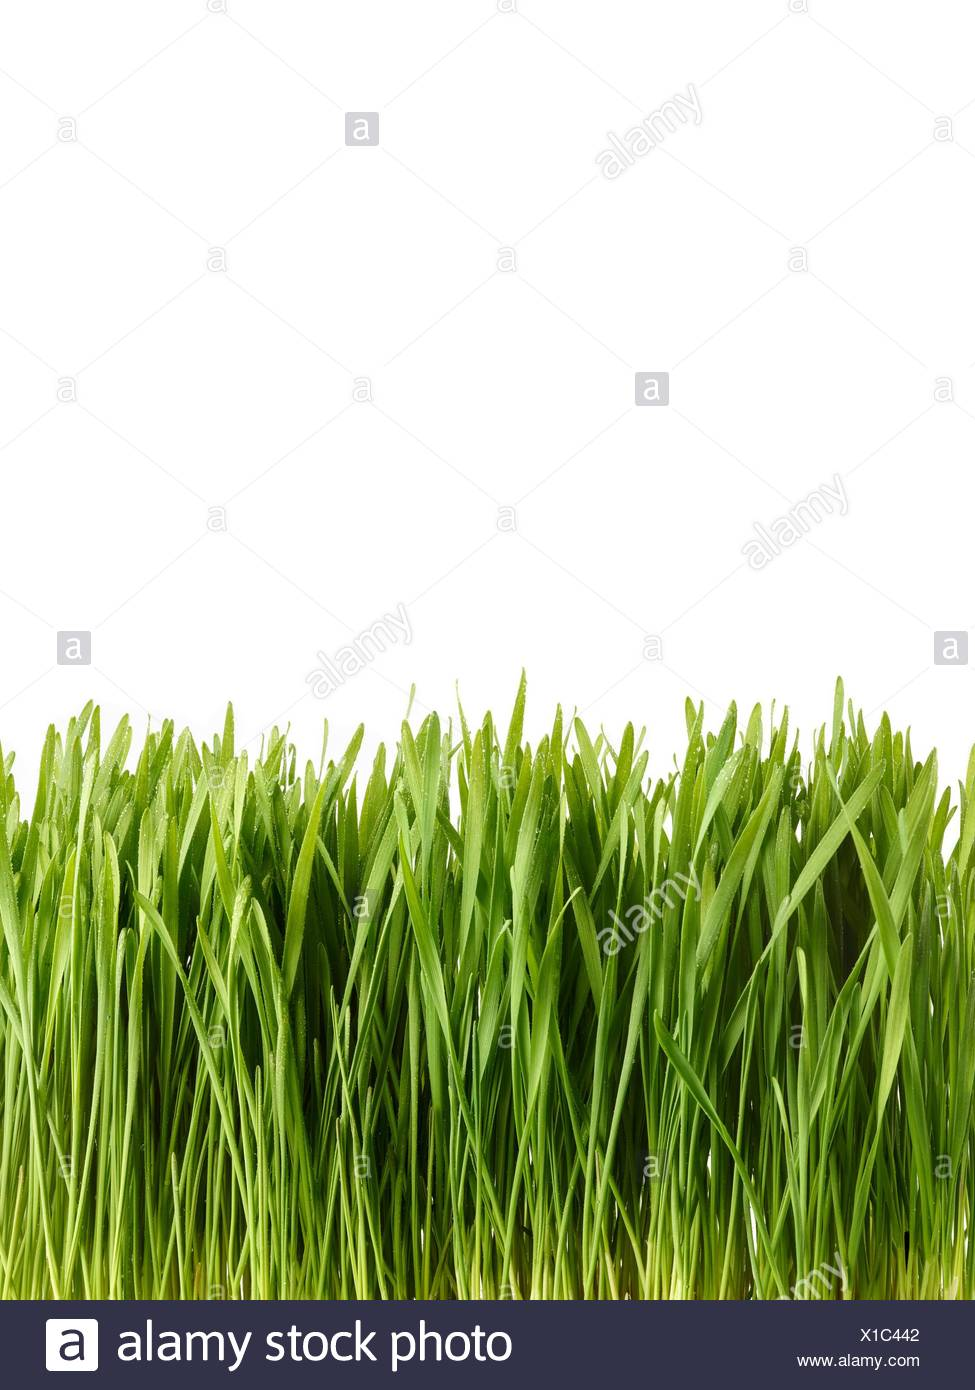 Sprouting wheatgrass against a white background, side view. - Stock Image